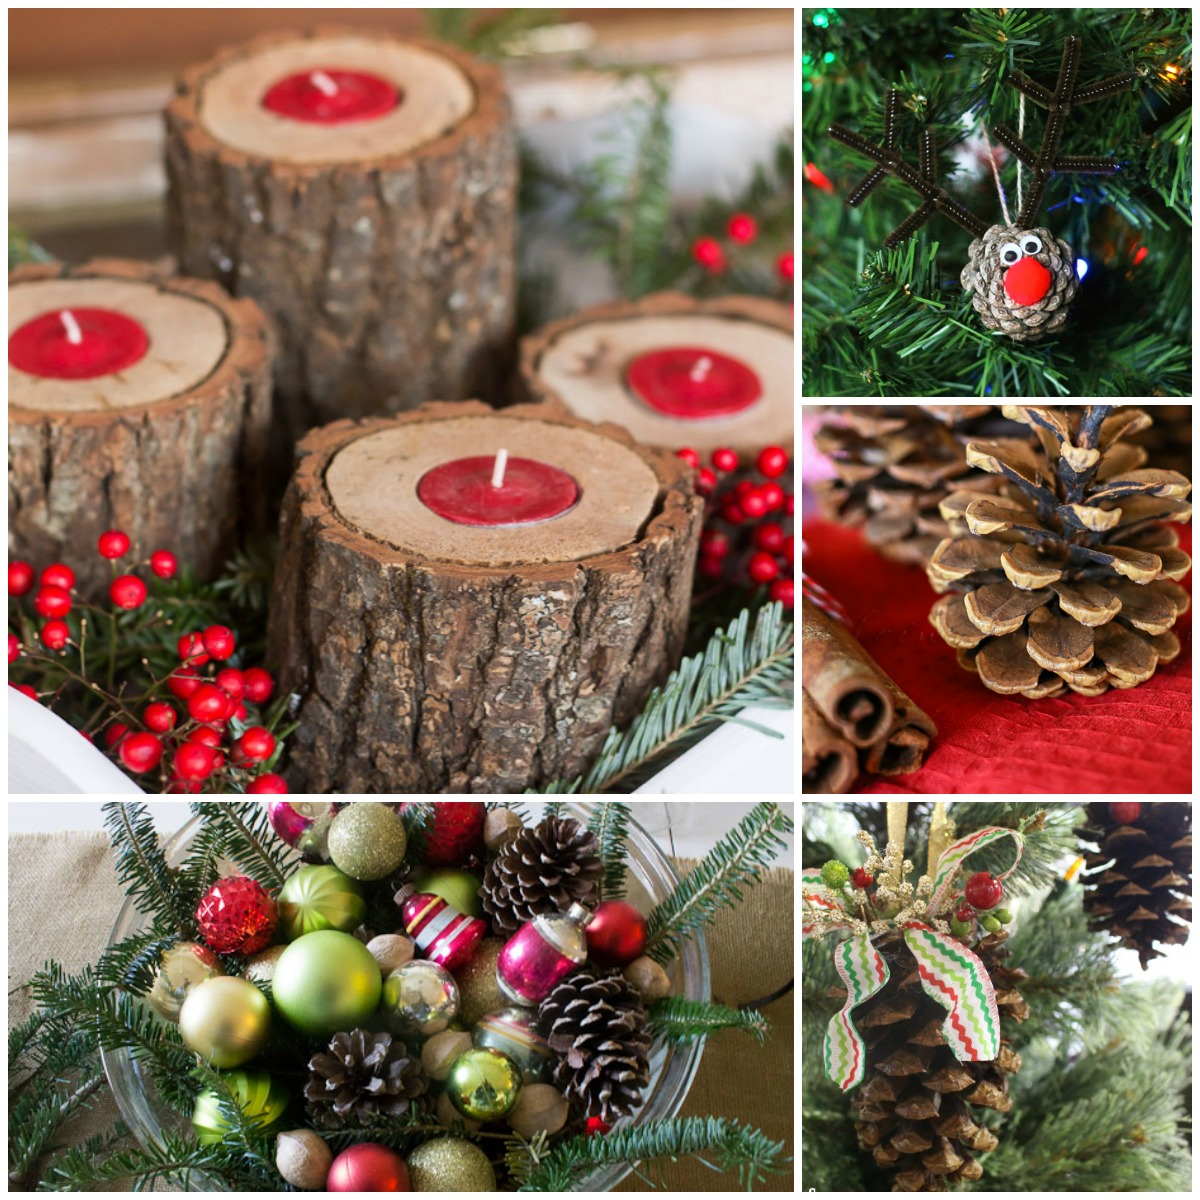 Natural Christmas Decor Ideas Aka Free Christmas Decorations Making Lemonade